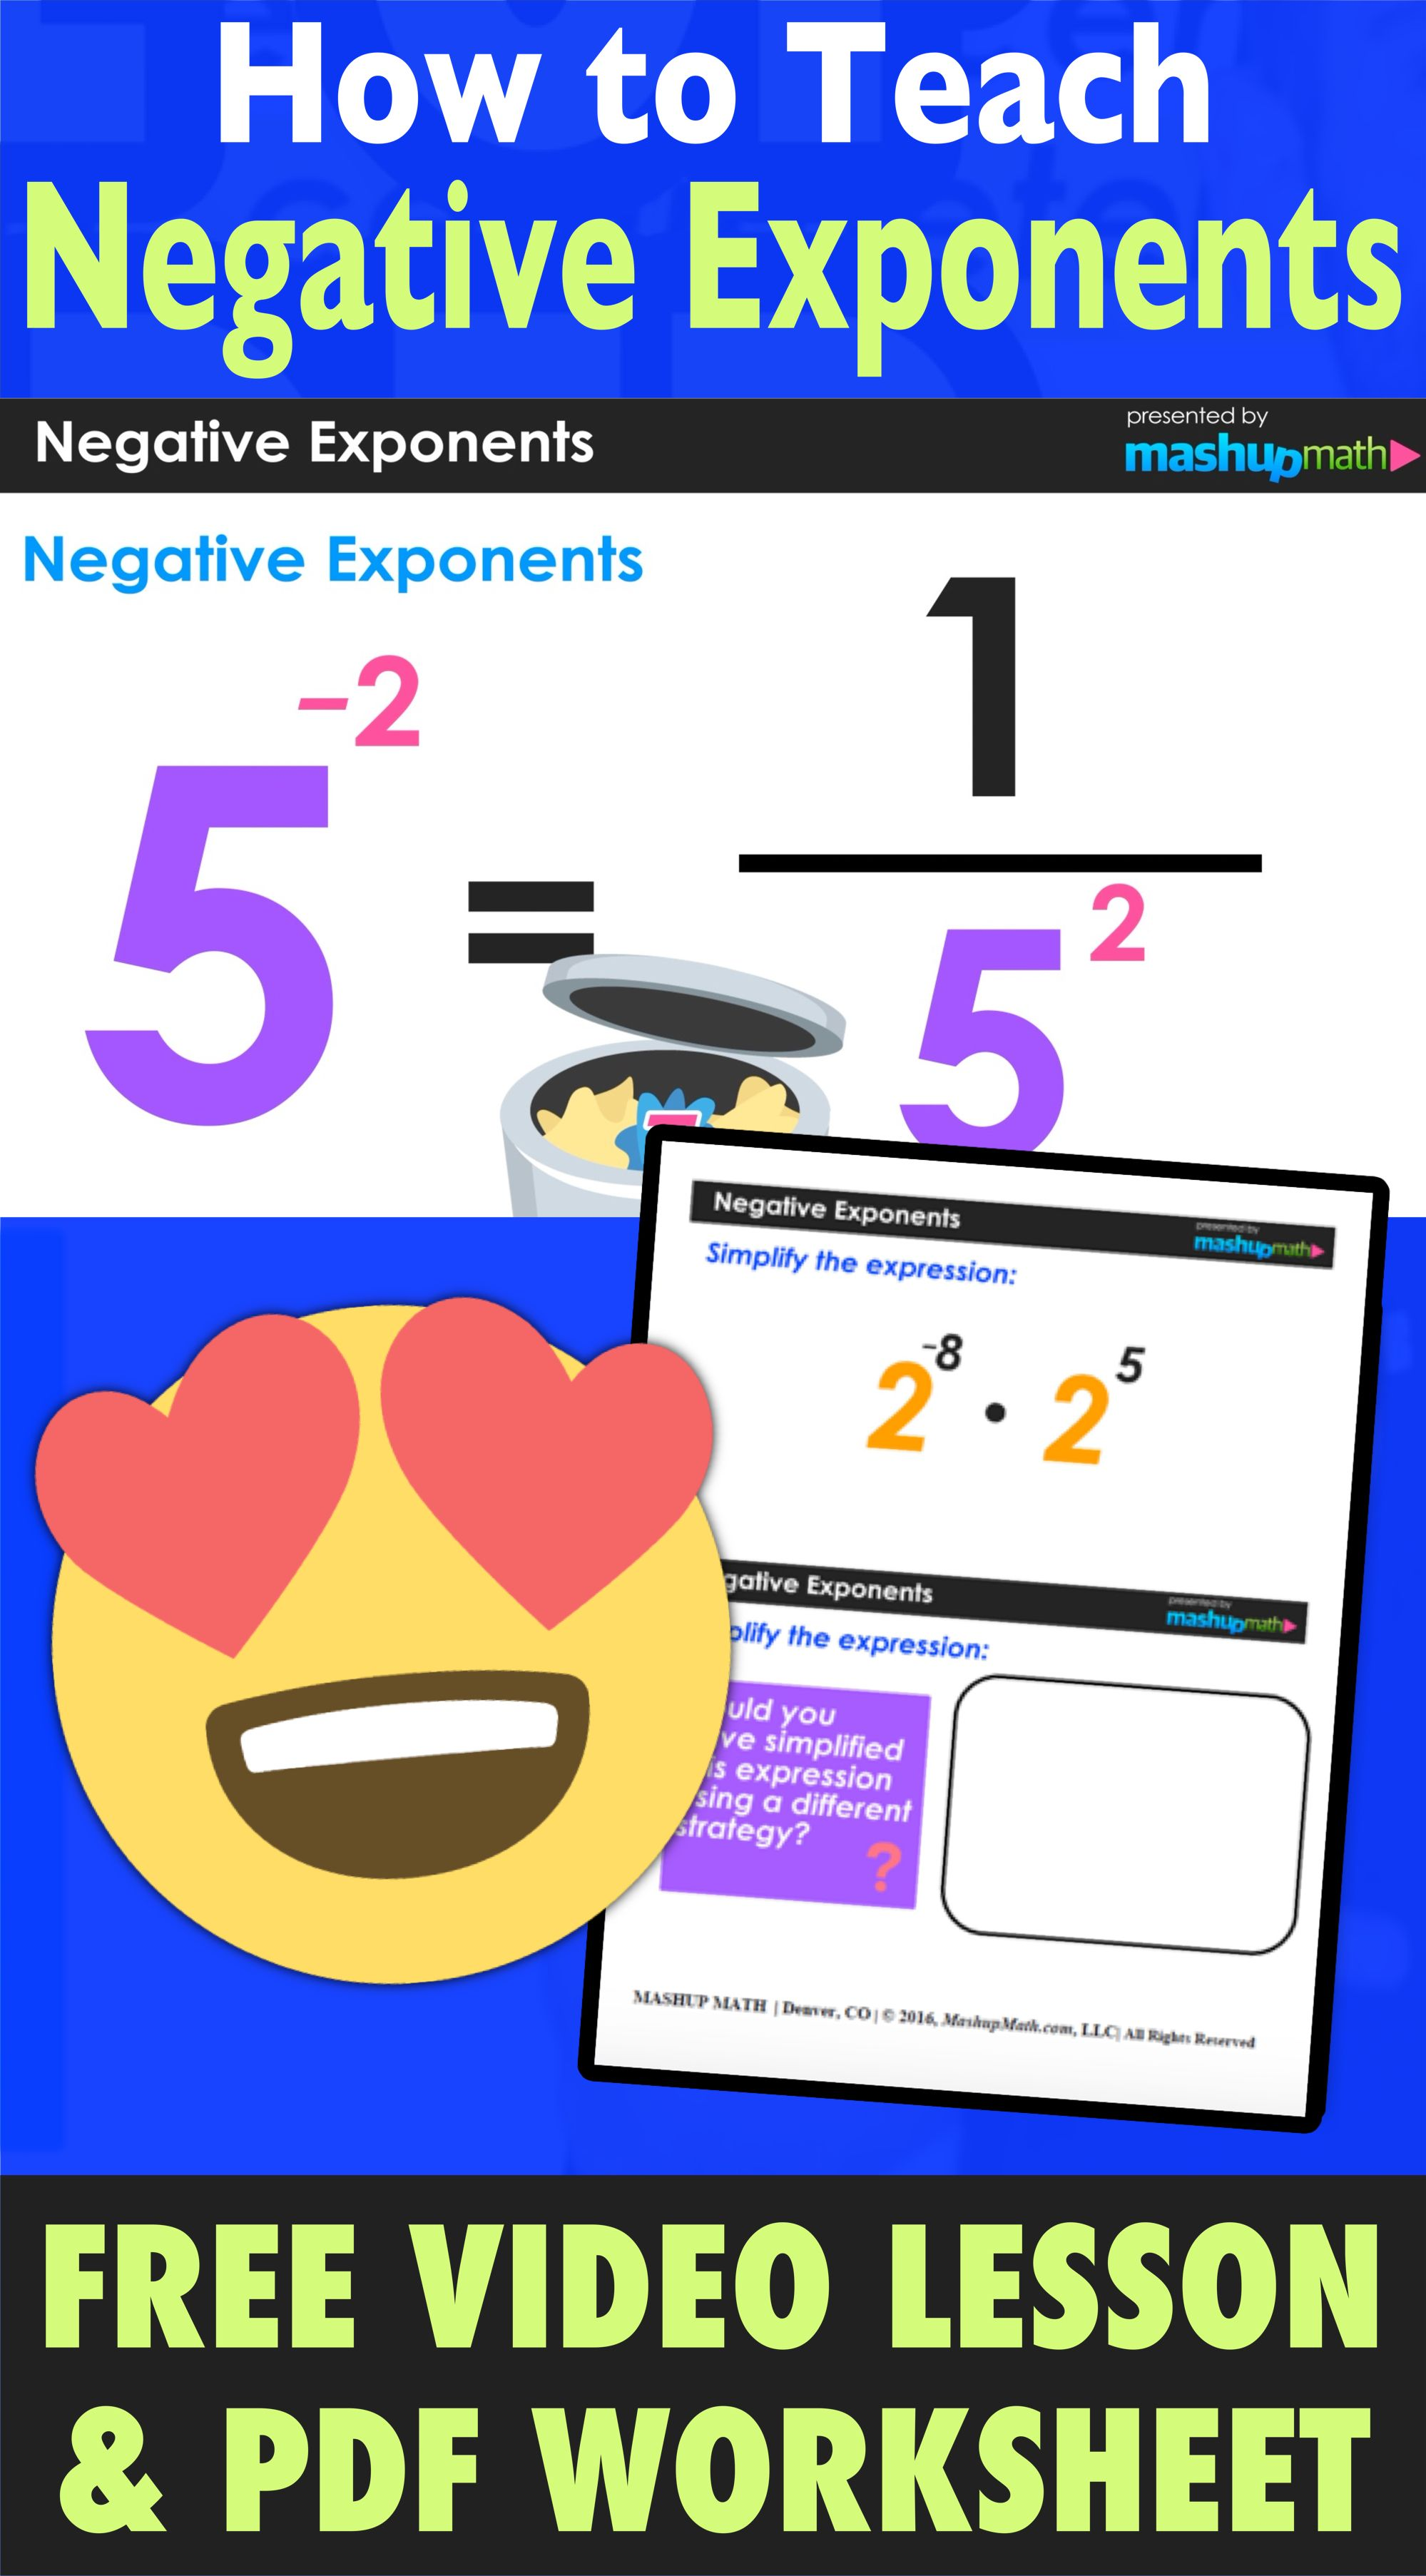 You Can Use Our Free How To Teach Negative Exponents Video Lesson And Free Worksheet To Help Your Visual Lea Exponent Worksheets Negative Exponents Exponents [ 3611 x 1999 Pixel ]